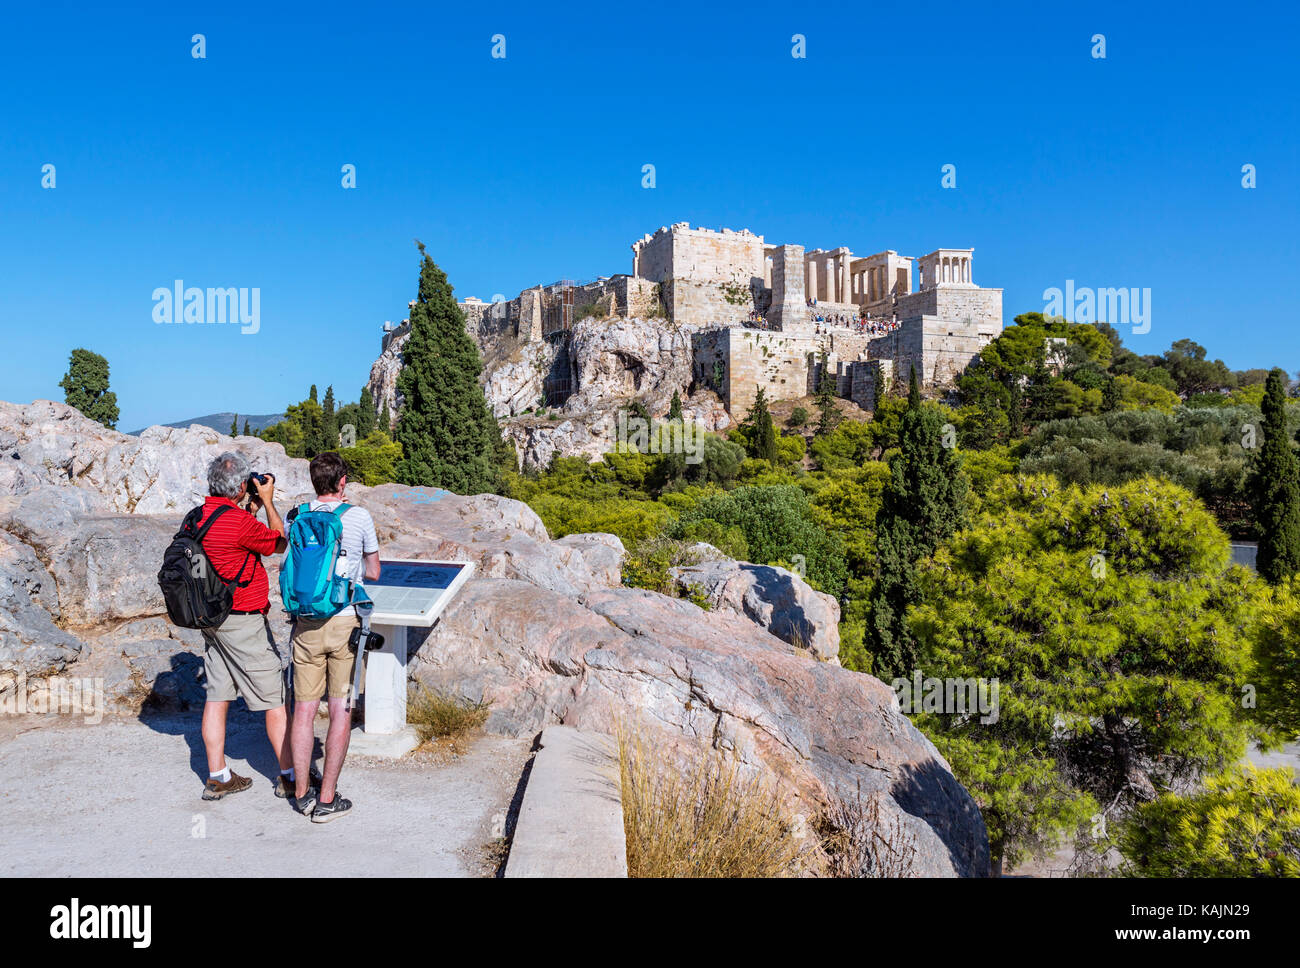 Acropolis, Athens. View of the Acropolis from Areopagus Hill, Athens, Greece - Stock Image